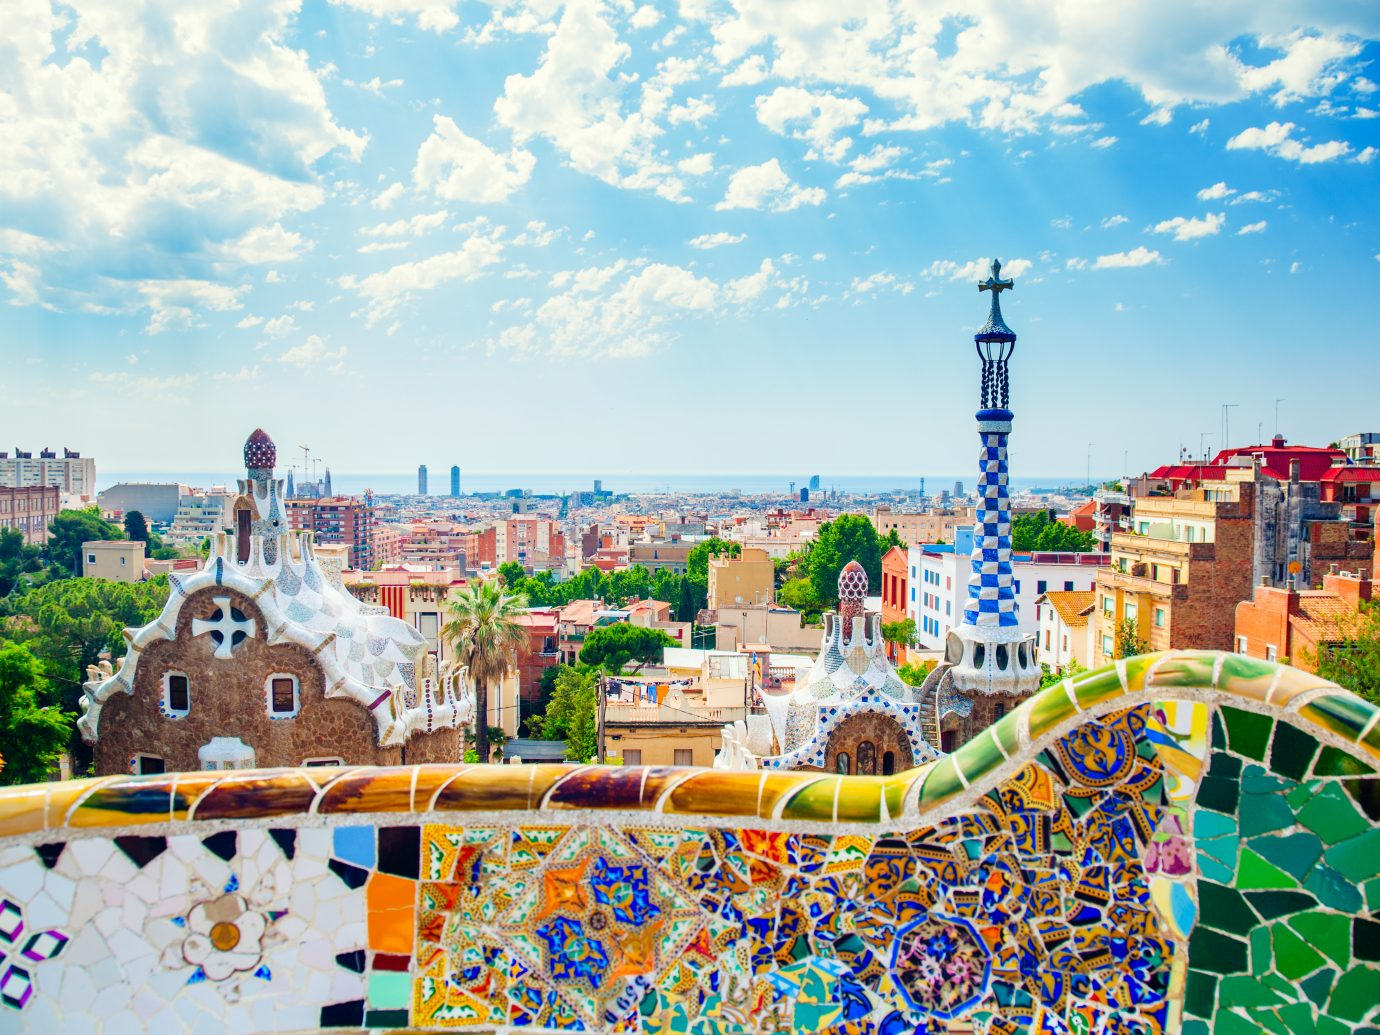 Panoramic view of Park Guell in Barcelona, Spain